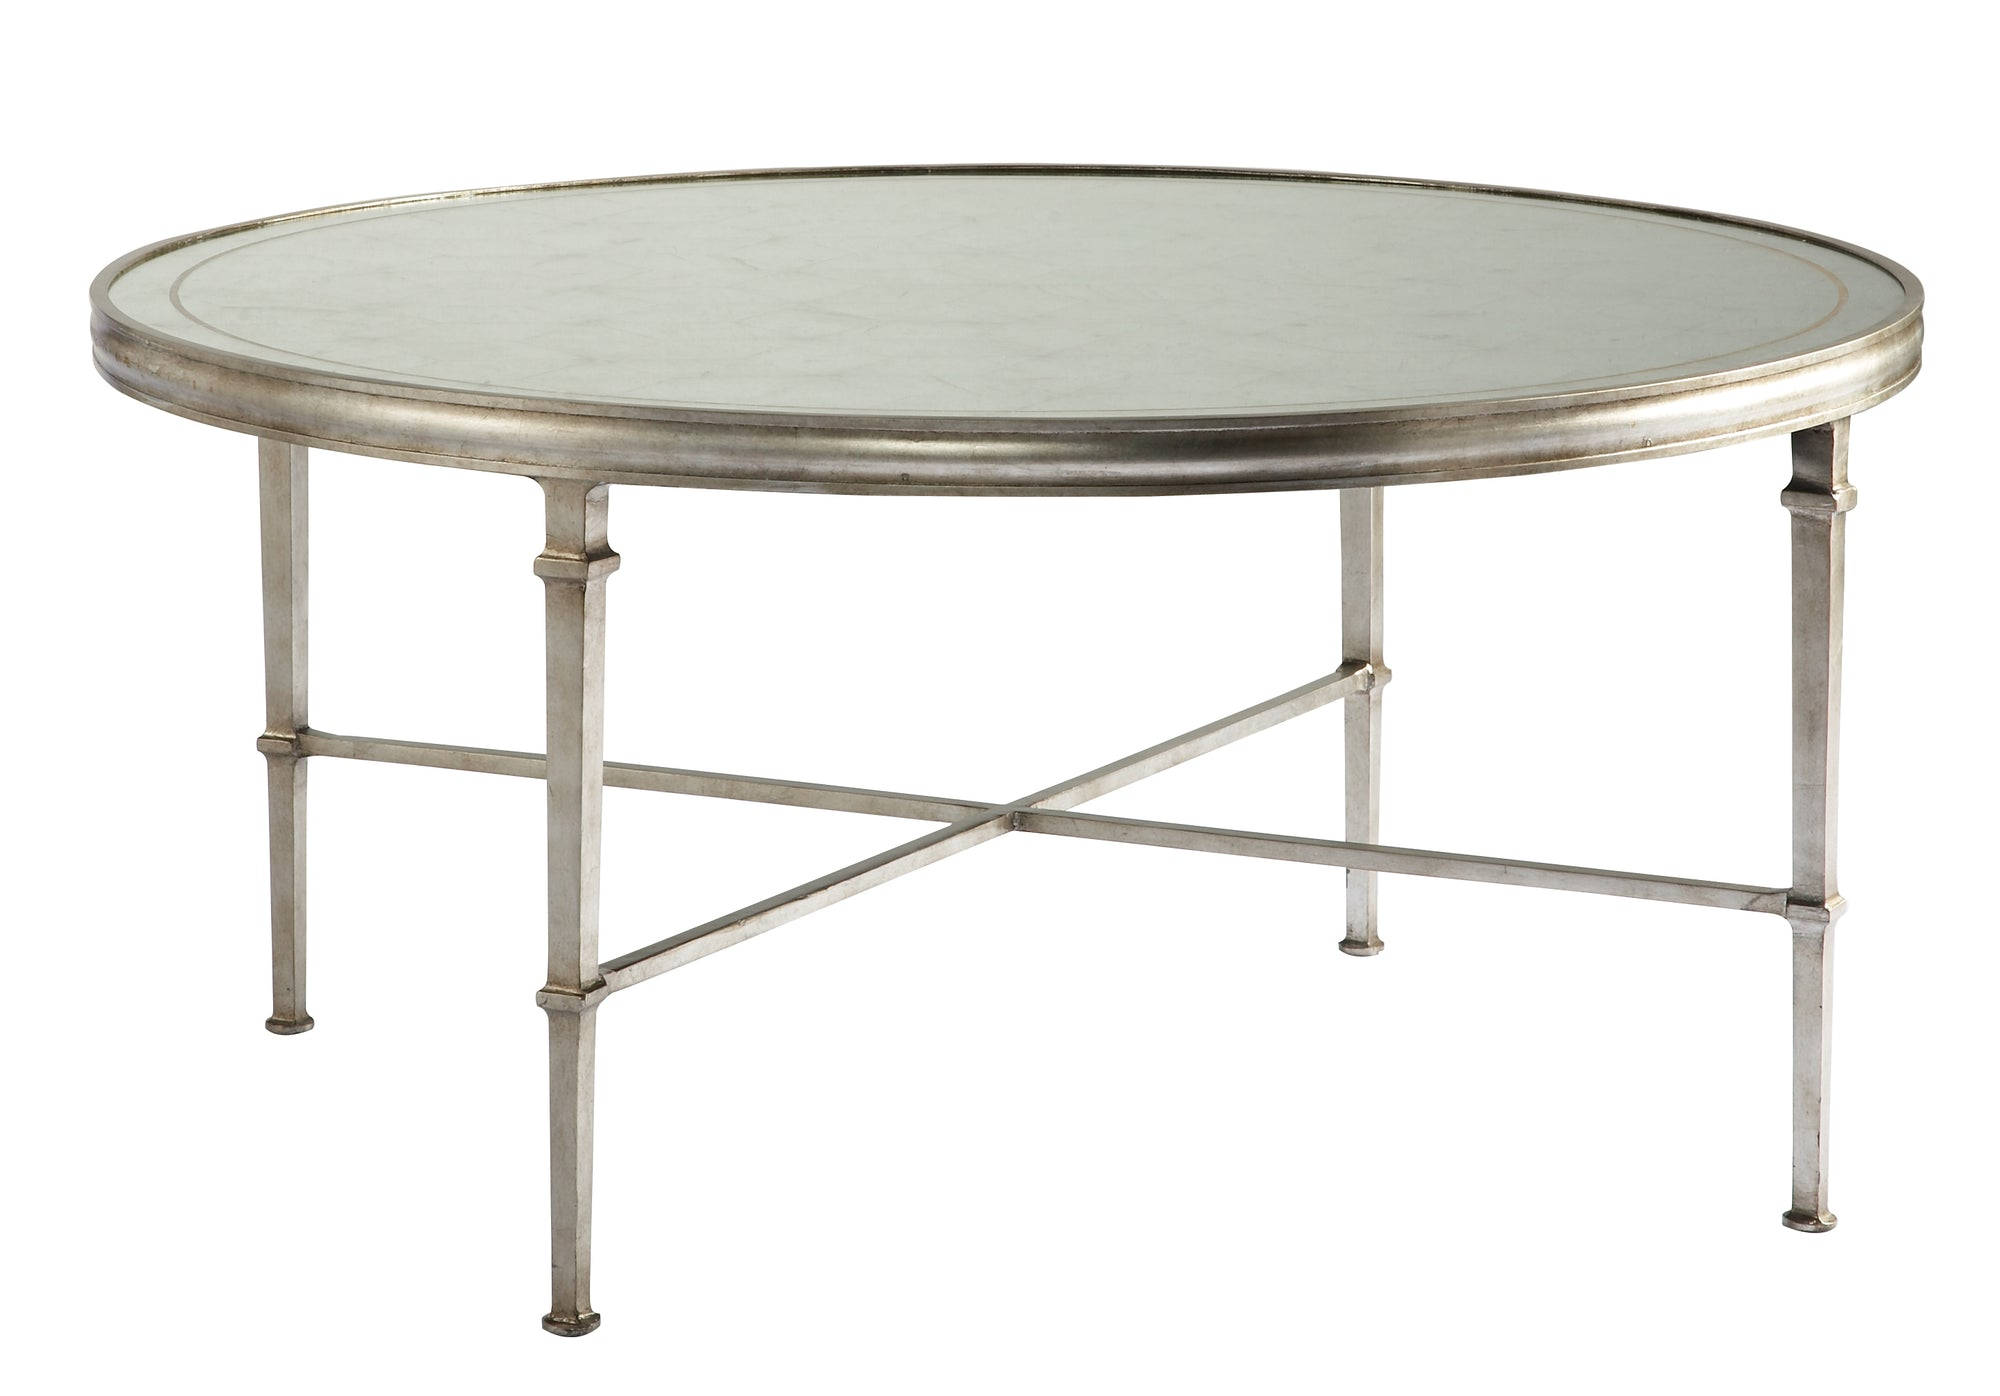 LOMBARD ROUND COCKTAIL TABLE